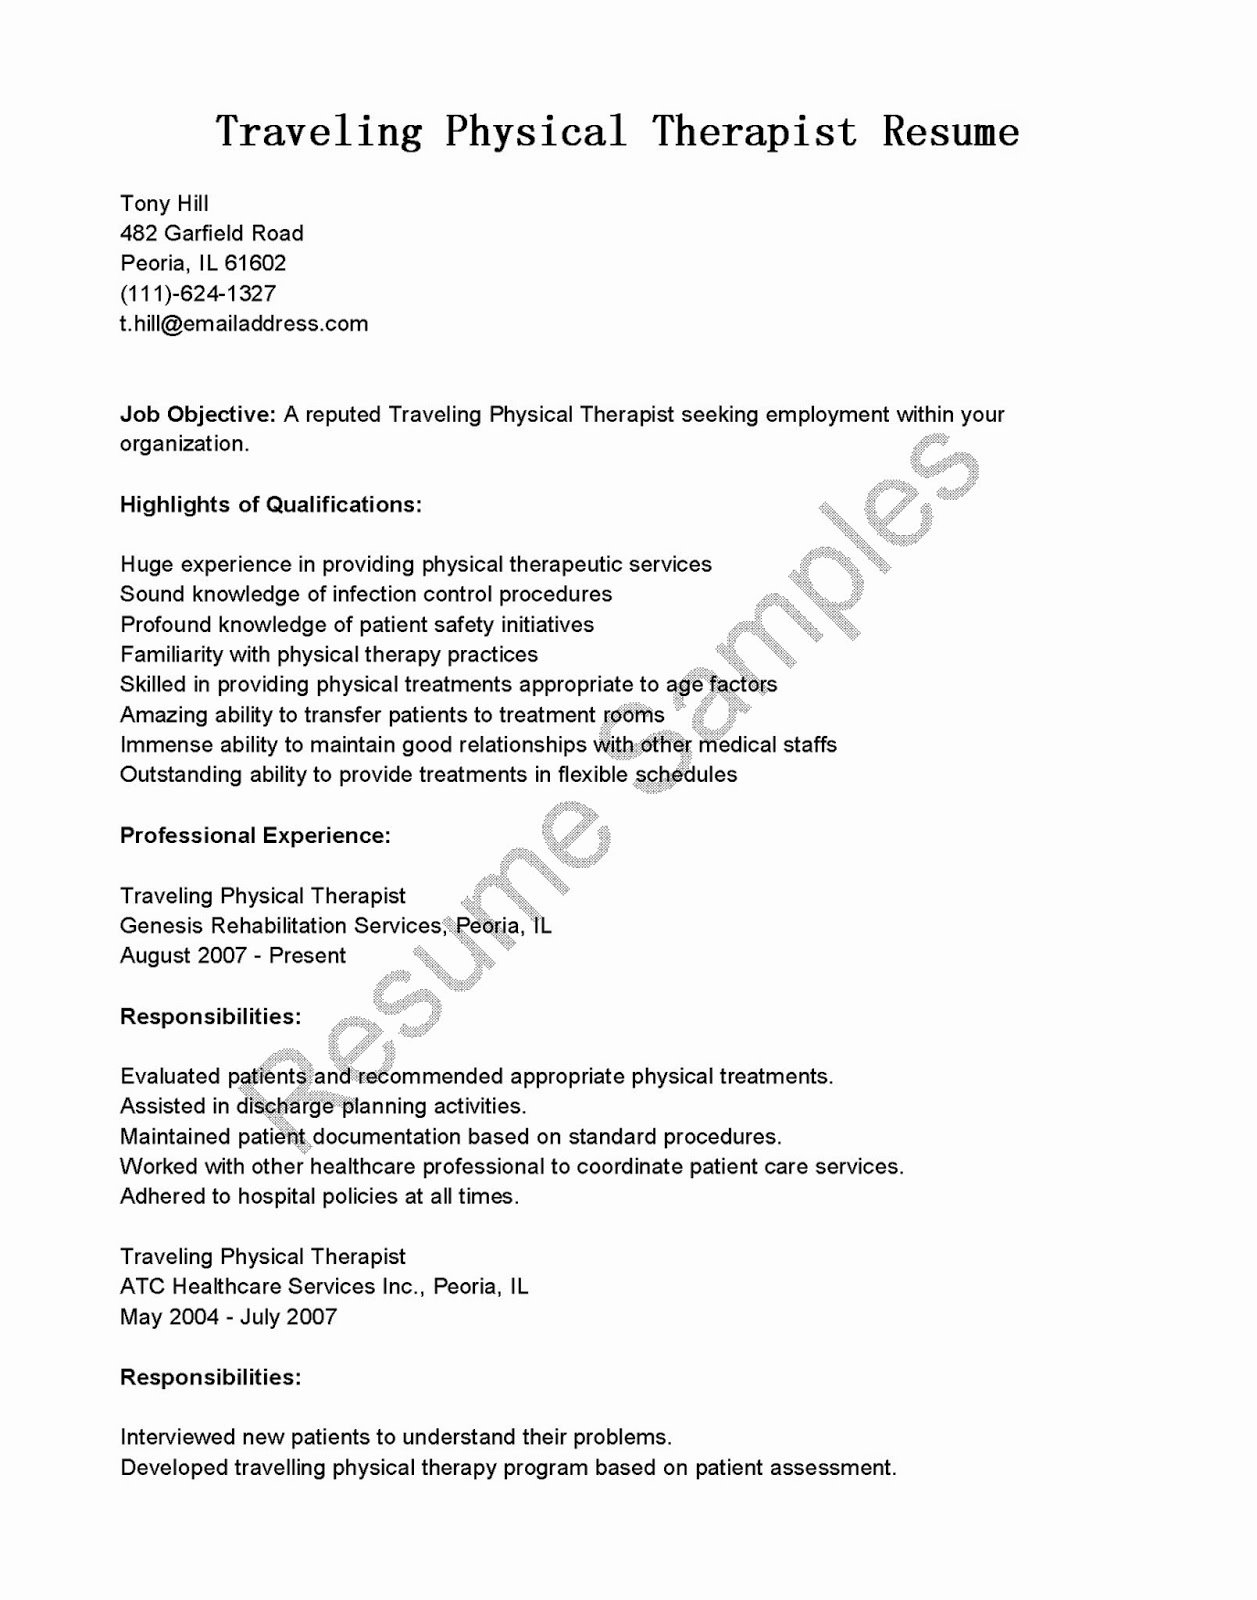 Physical therapy Resume Template Unique Resume Samples Traveling Physical therapist Resume